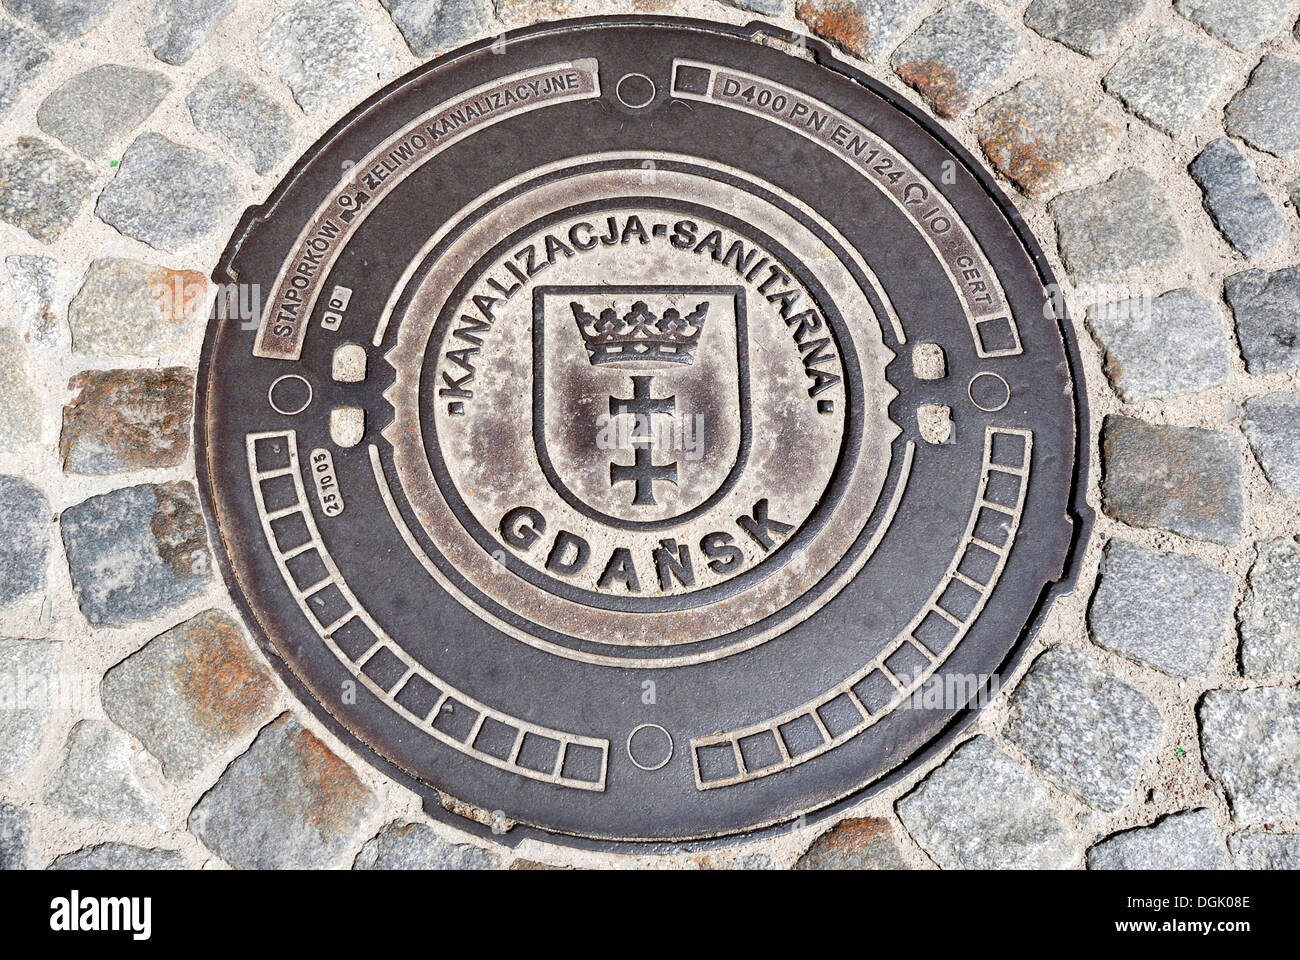 Manhole cover at the Long Market Gdansk. - Stock Image